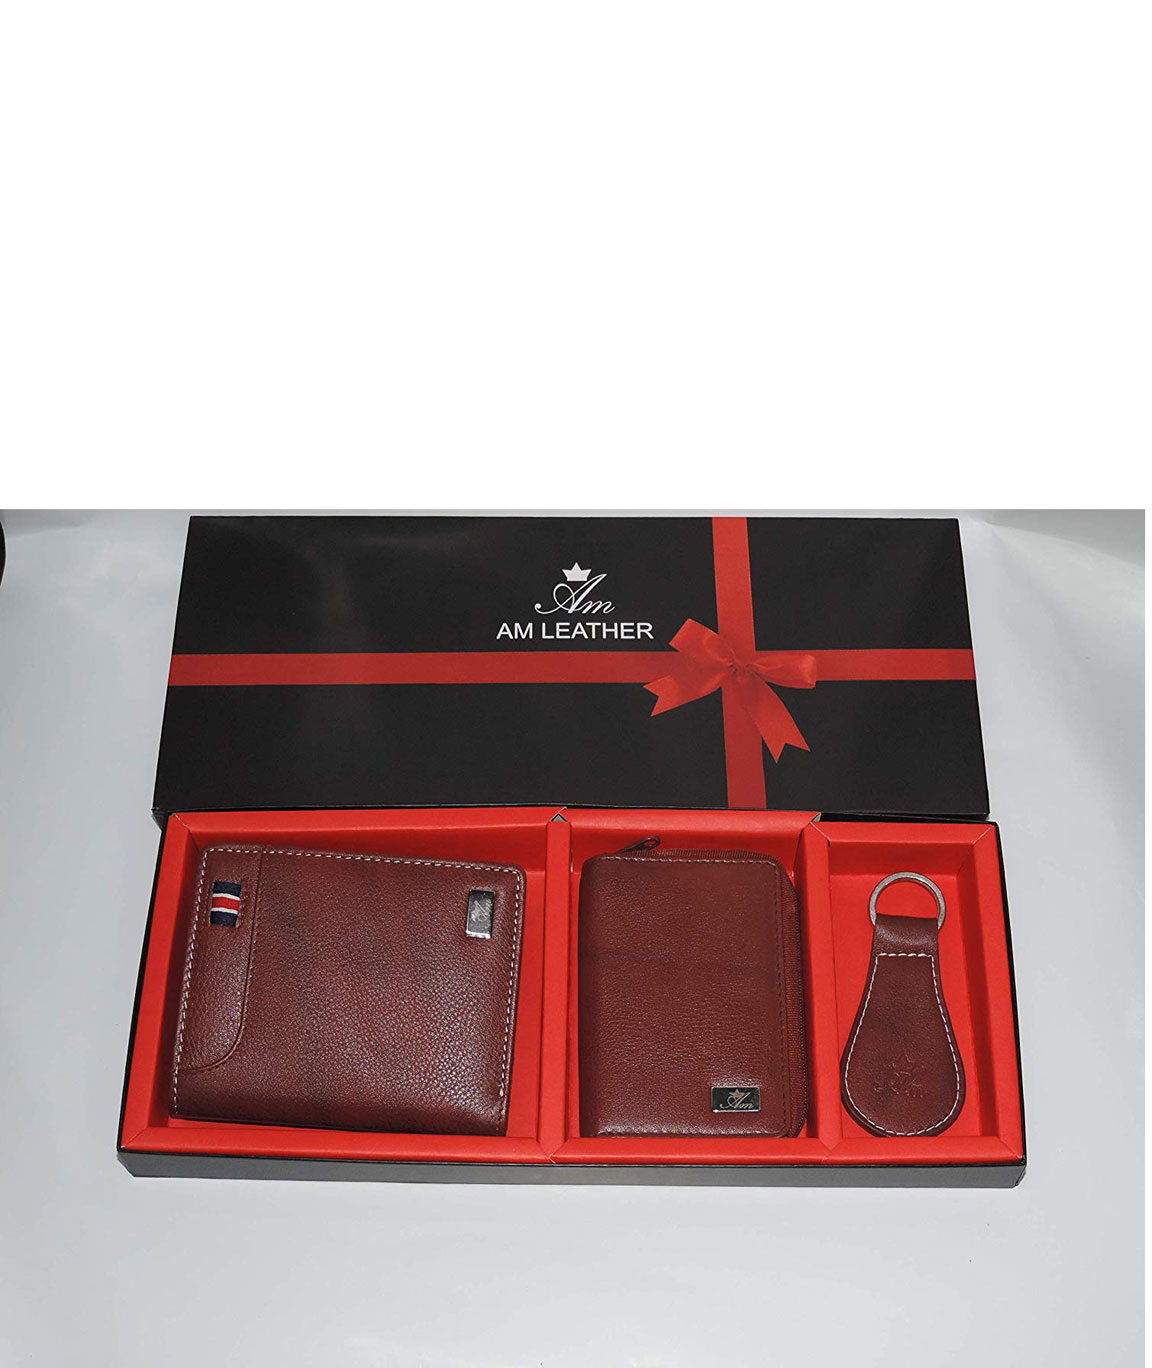 AM LEATHER Premium and Best Quality Hand Crafted Corporate Gift